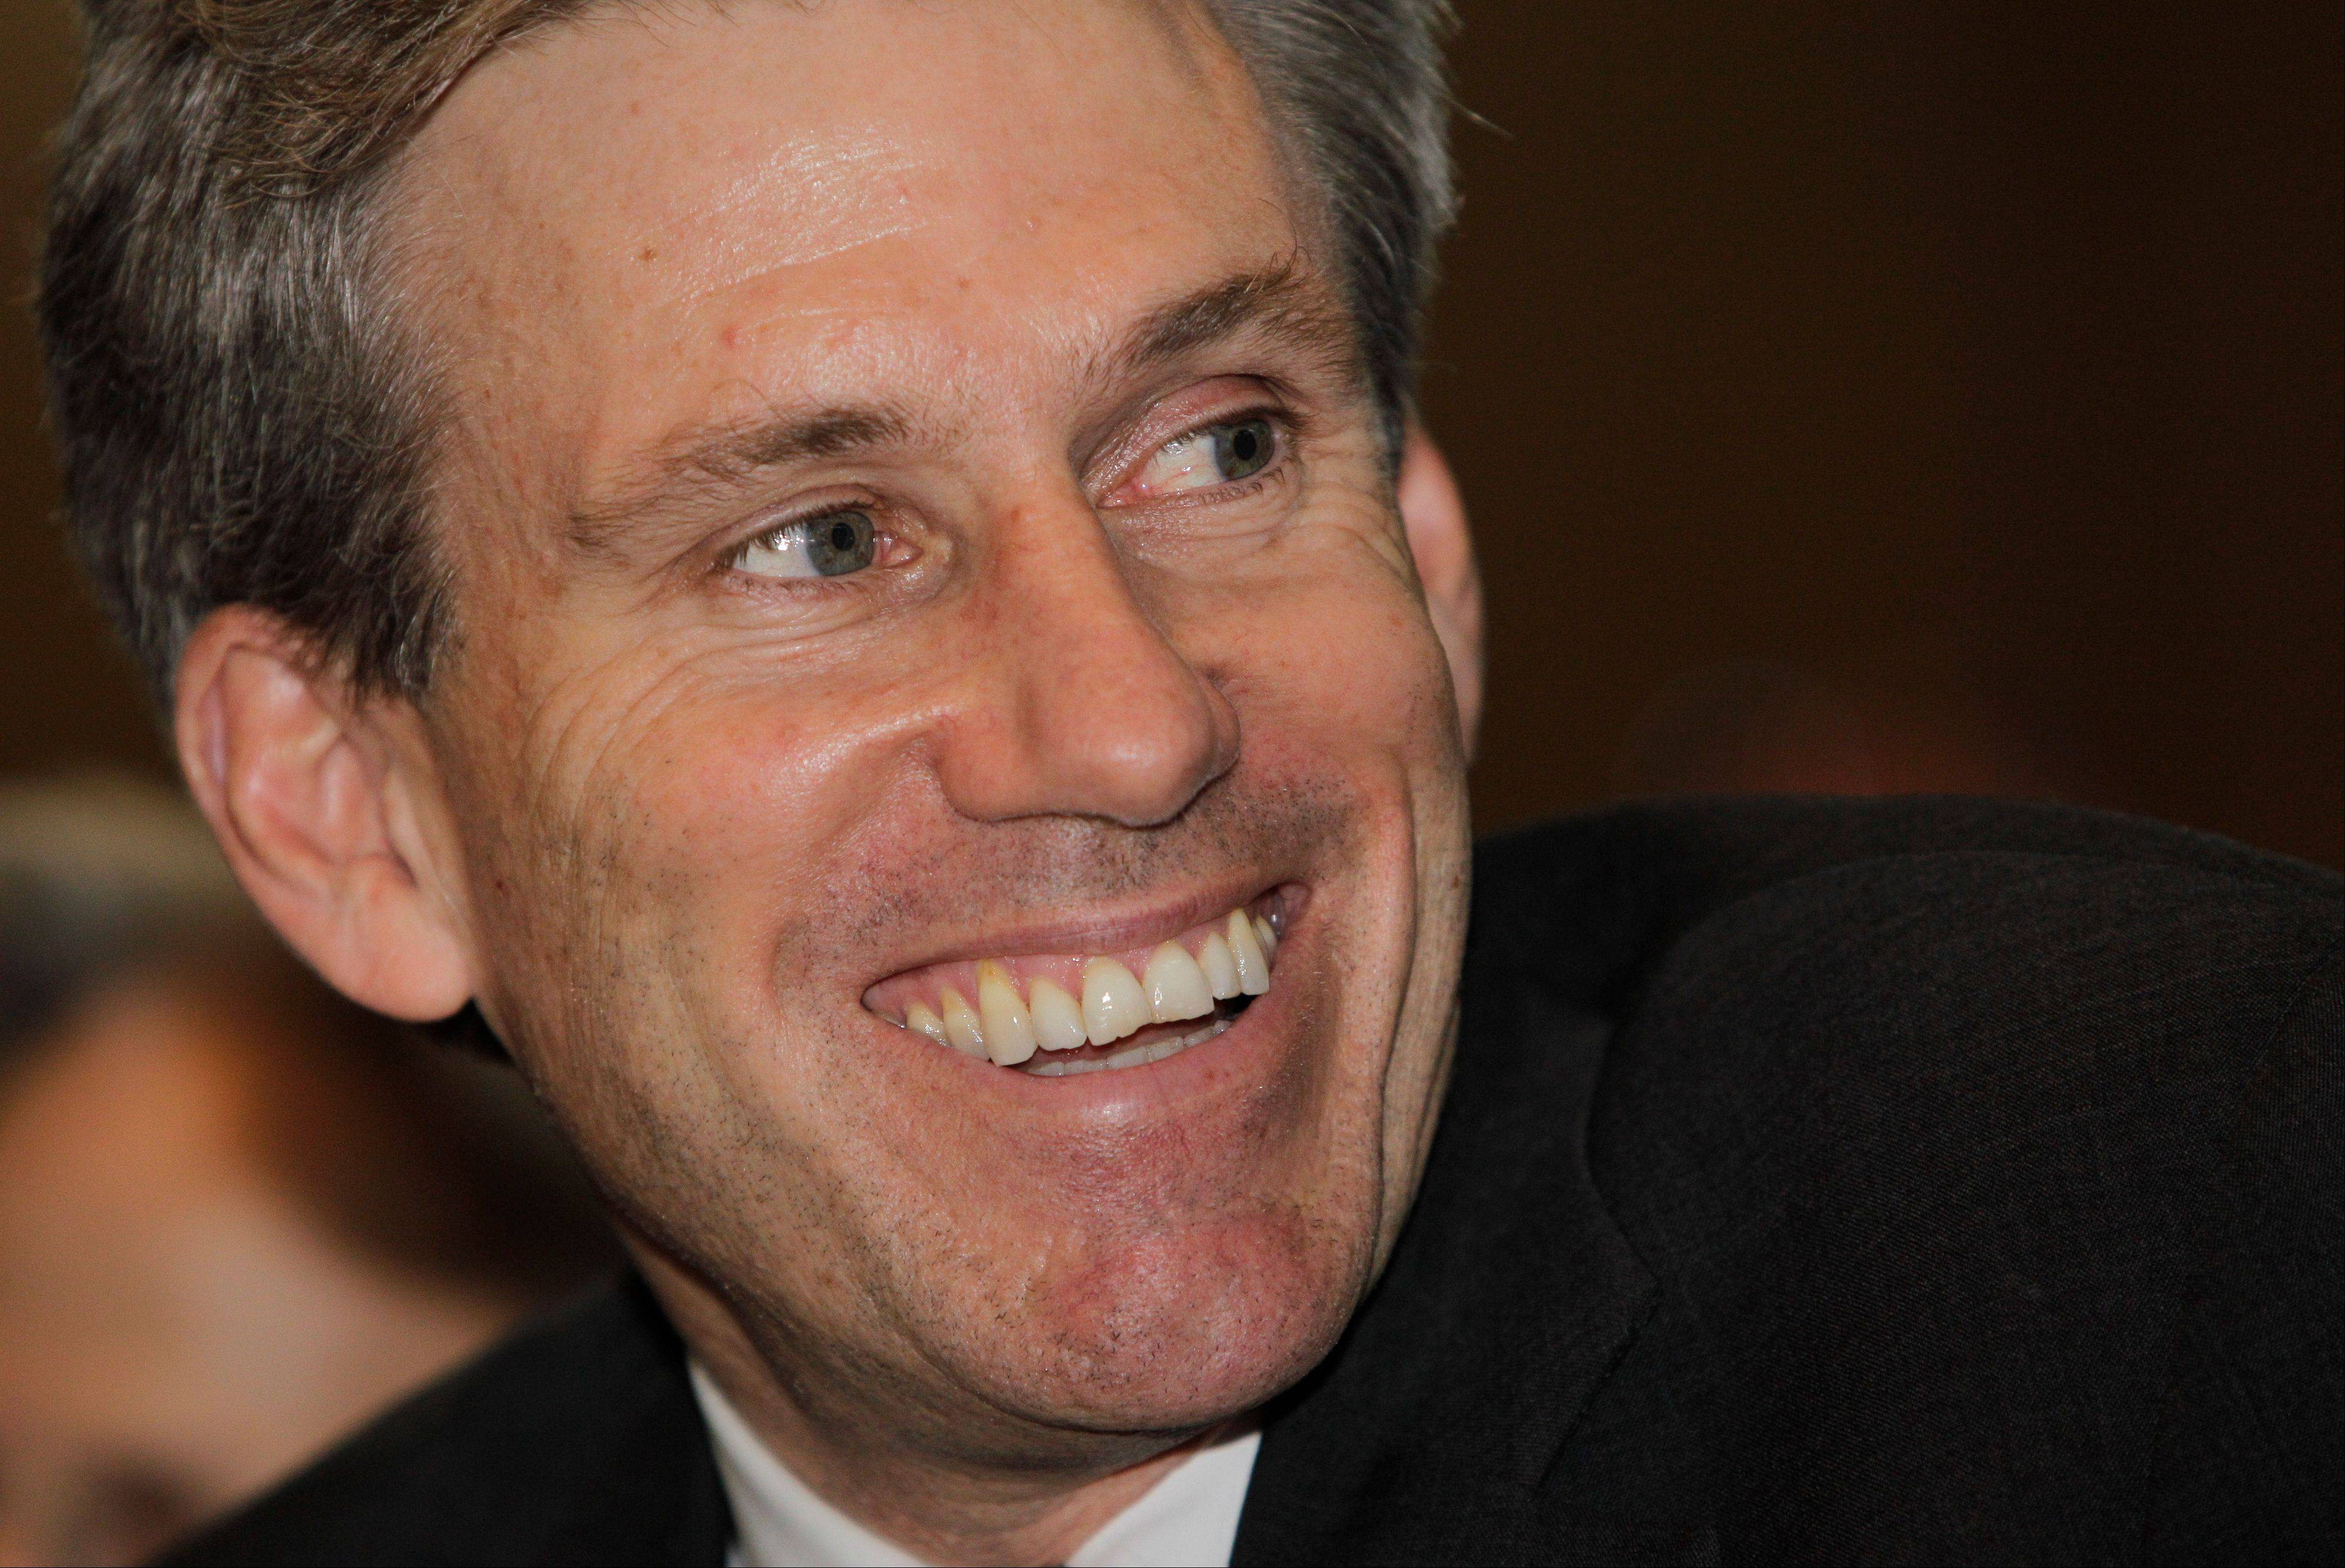 U.S. Ambassador to Libya Chris Stevens was among four Americans killed in an attack on the U.S. consulate in Benghazi.